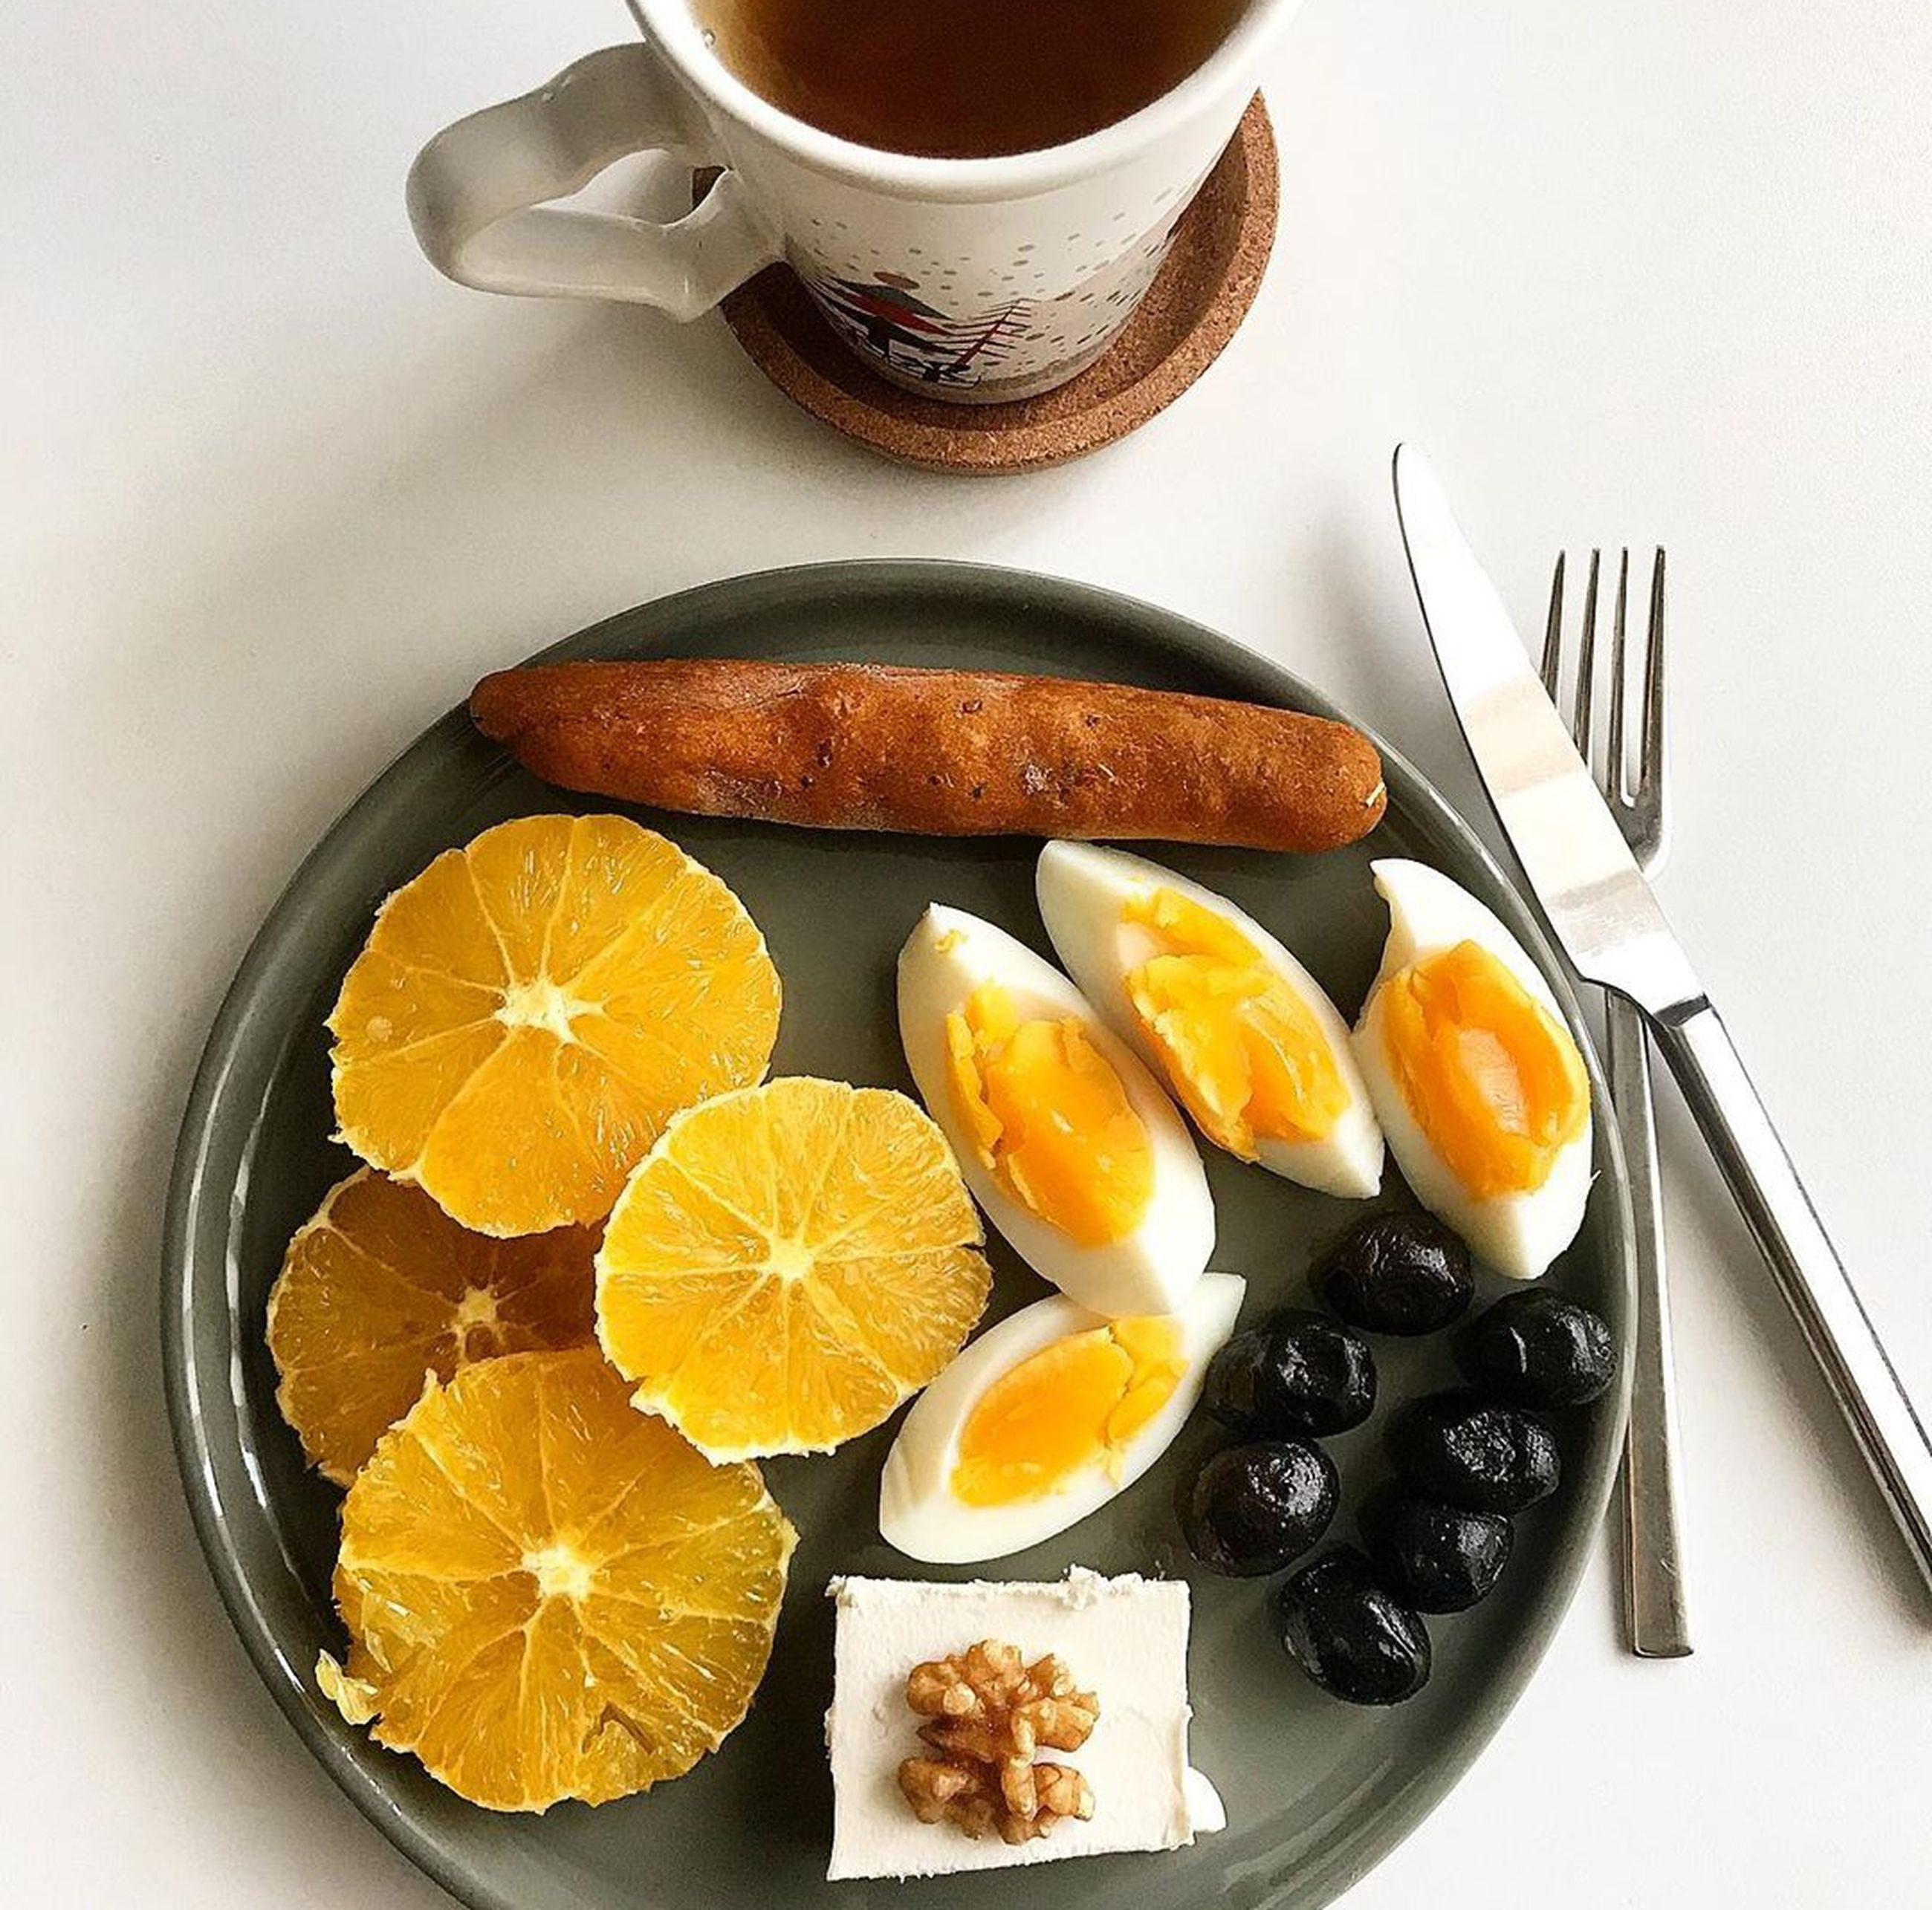 food and drink, food, freshness, eating utensil, kitchen utensil, healthy eating, fruit, wellbeing, still life, citrus fruit, plate, ready-to-eat, indoors, fork, slice, table, spoon, directly above, high angle view, refreshment, no people, orange, breakfast, table knife, temptation, ripe